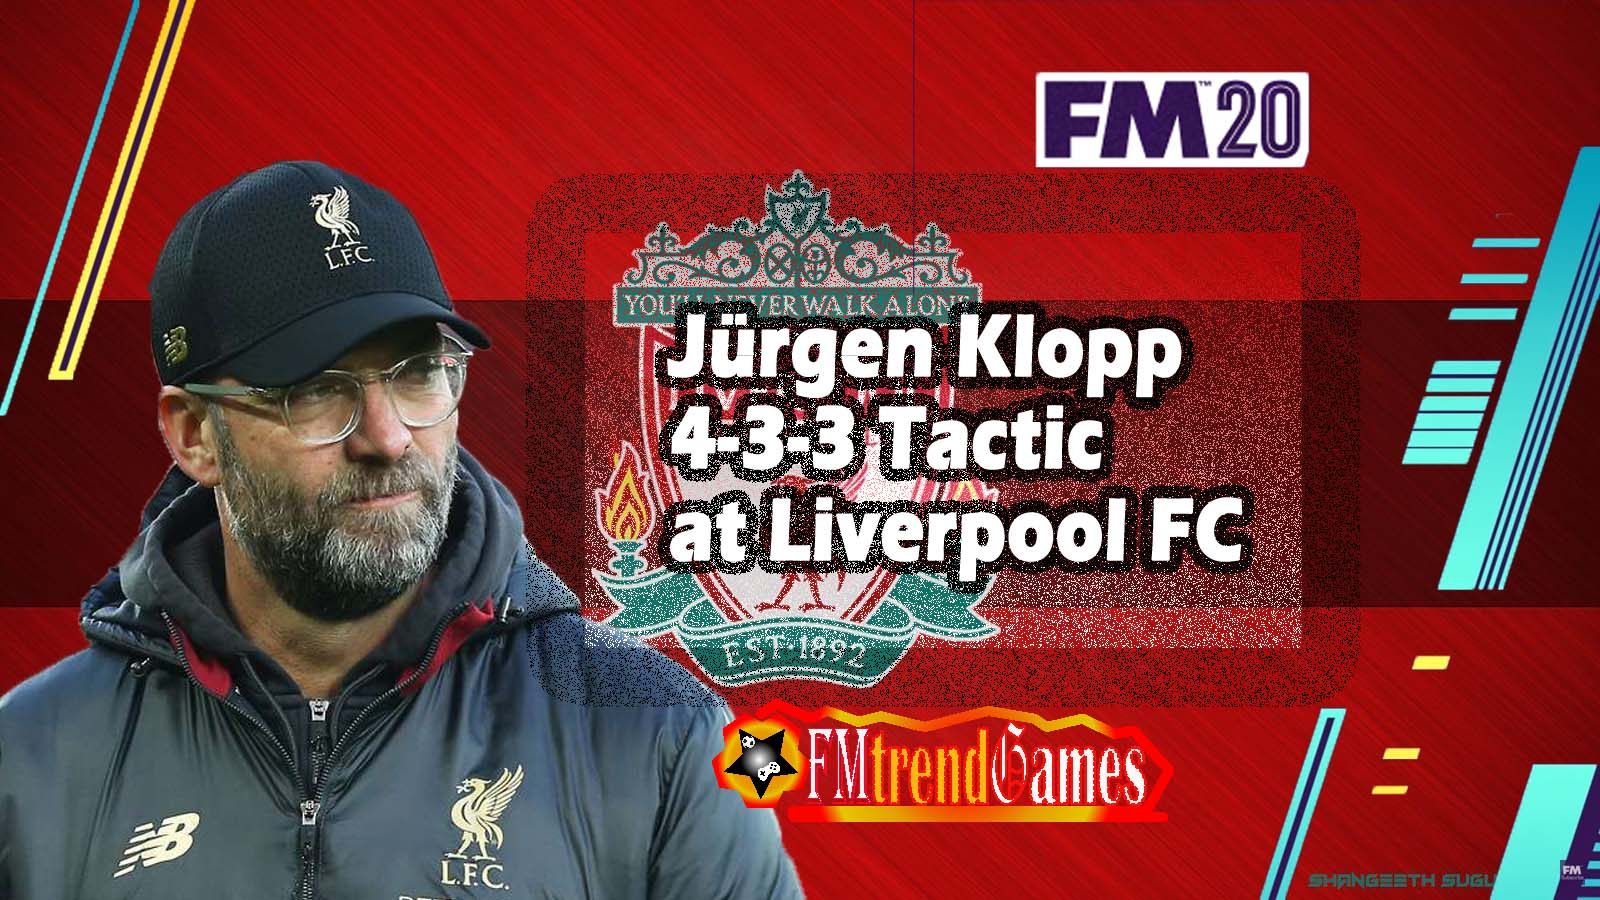 Jurgen Klopp 4 3 3 Gegenpress Tactic With Liverpool FC In